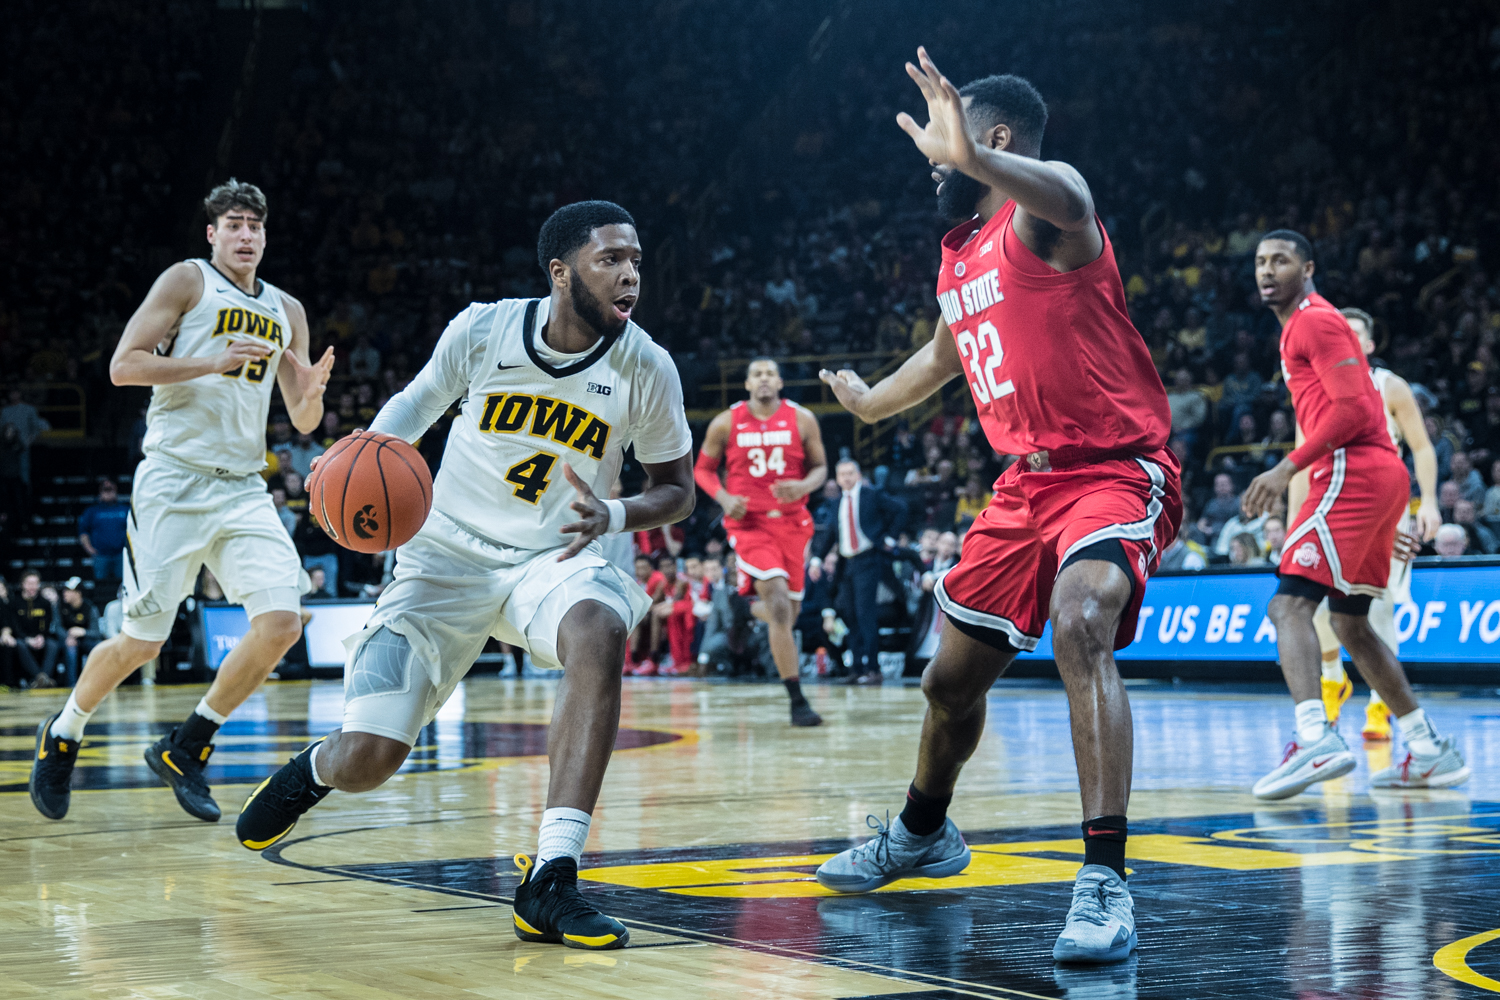 Iowa+guard+Isaiah+Moss+drives+to+the+basket+during+a+men%27s+basketball+matchup+between+Ohio+State+and+Iowa+at+Carver-Hawkeye+Arena+on+Saturday%2C+January+12%2C+2019.+The+Hawkeyes+defeated+the+Buckeyes%2C+72-62.